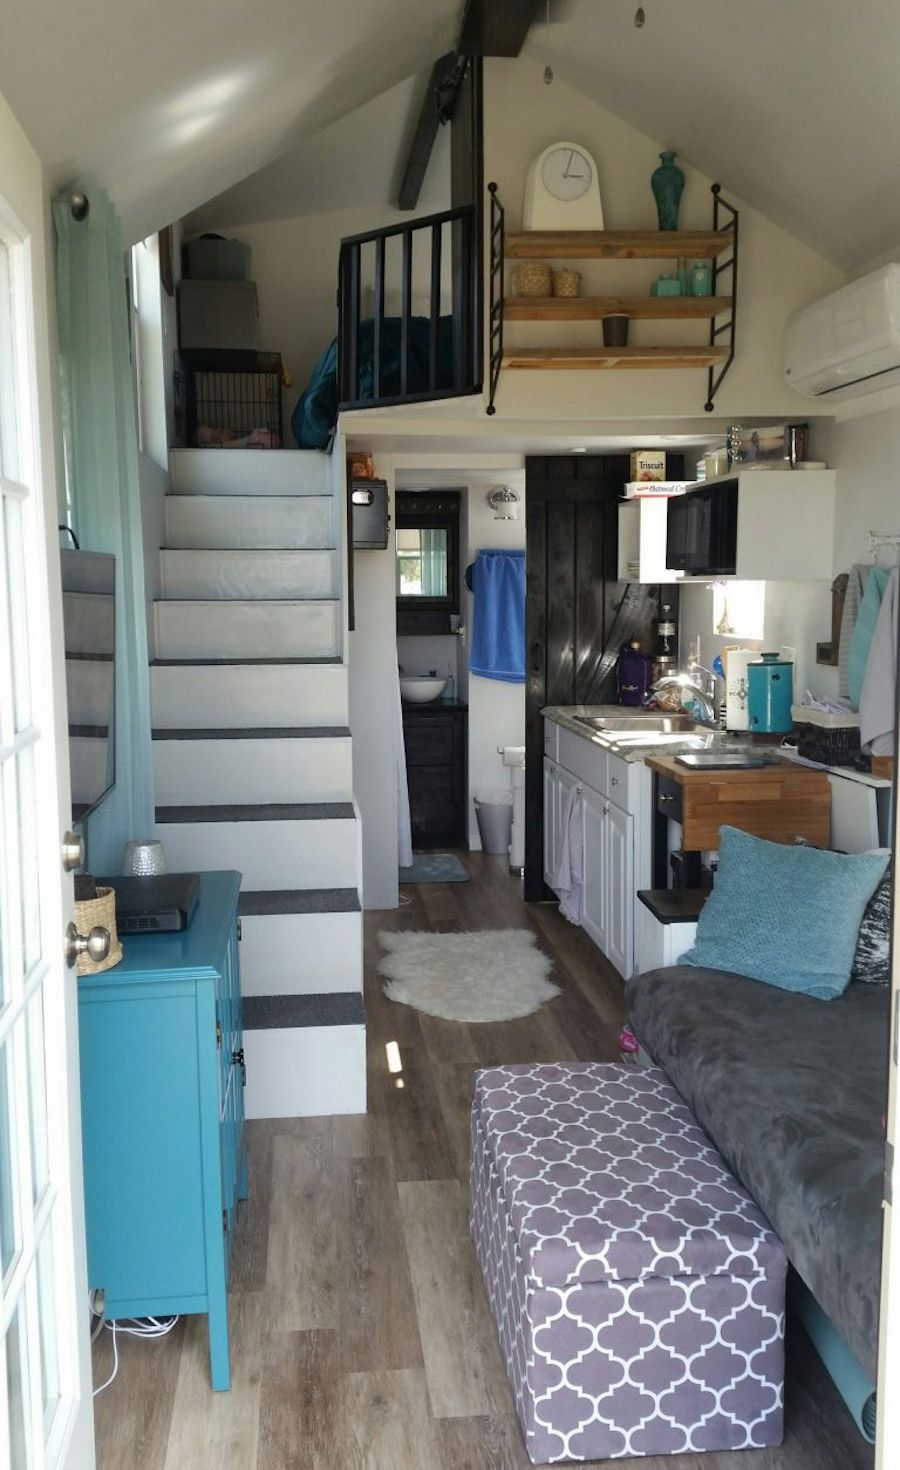 a 240 square feet tiny house on wheels in afton tennessee - 3 Bedroom Tiny House